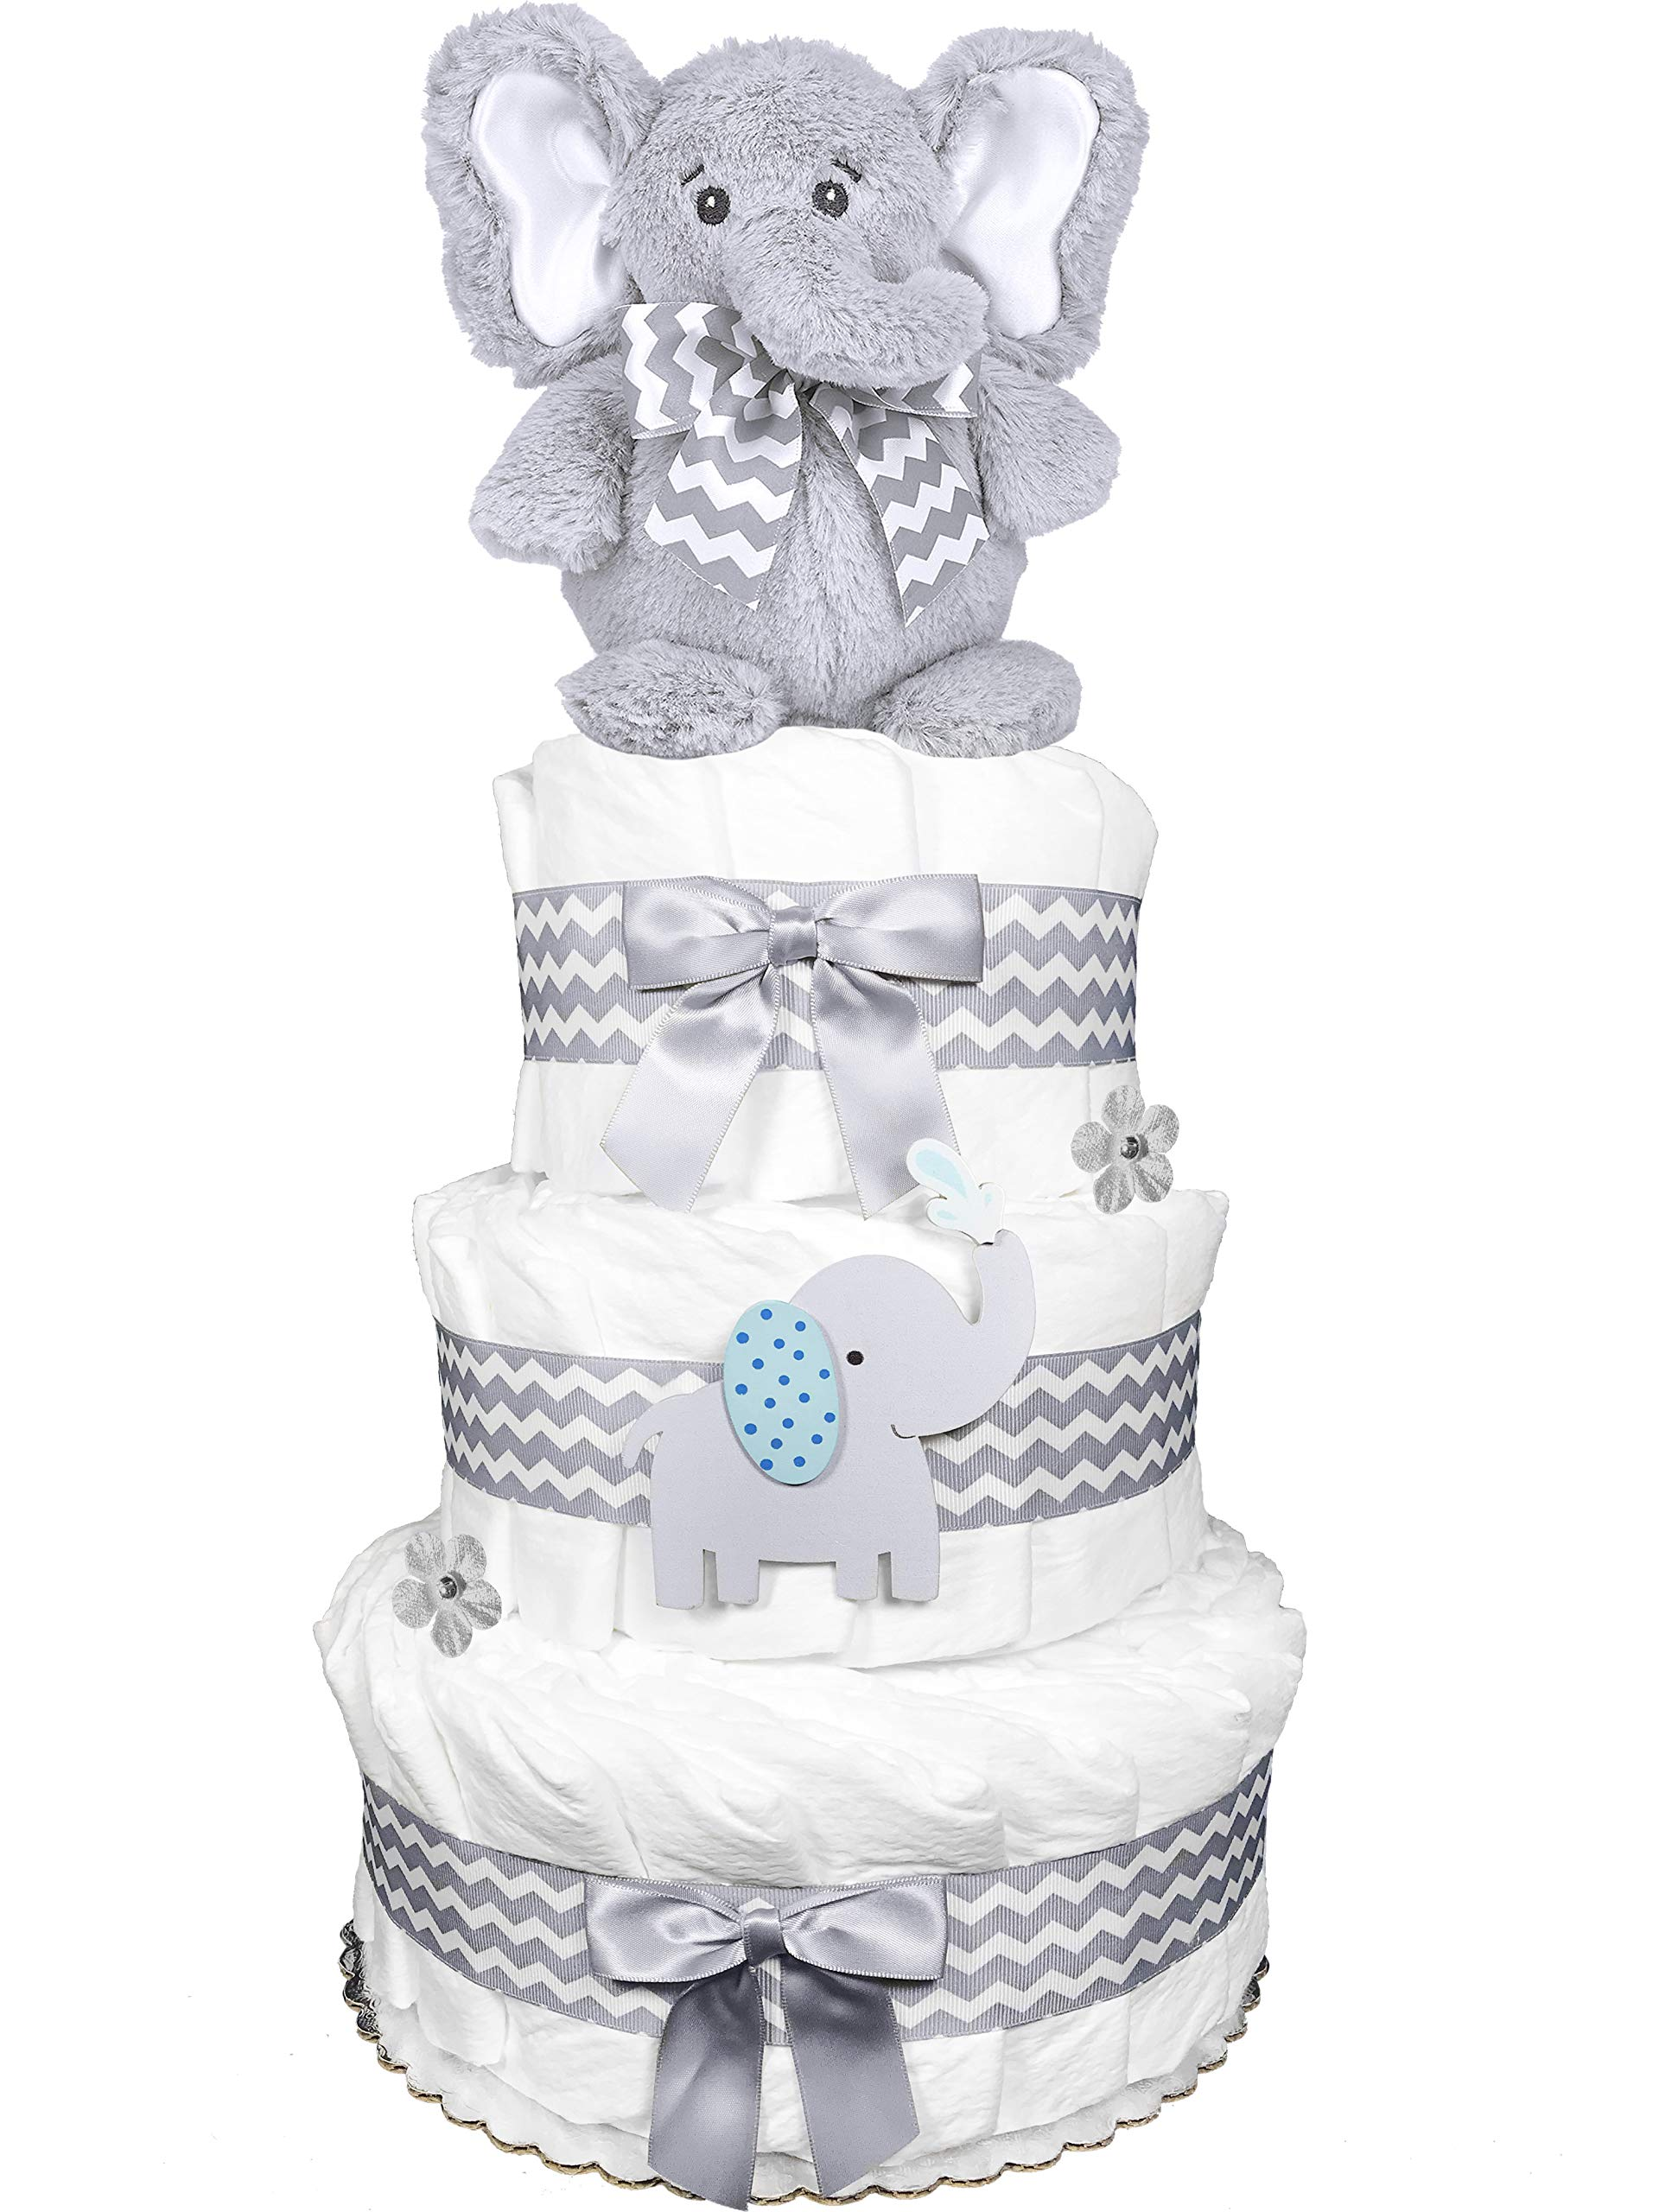 Elephant 3-Tier Diaper Cake - Baby Shower Centerpiece Gift Set - Chevron Gray